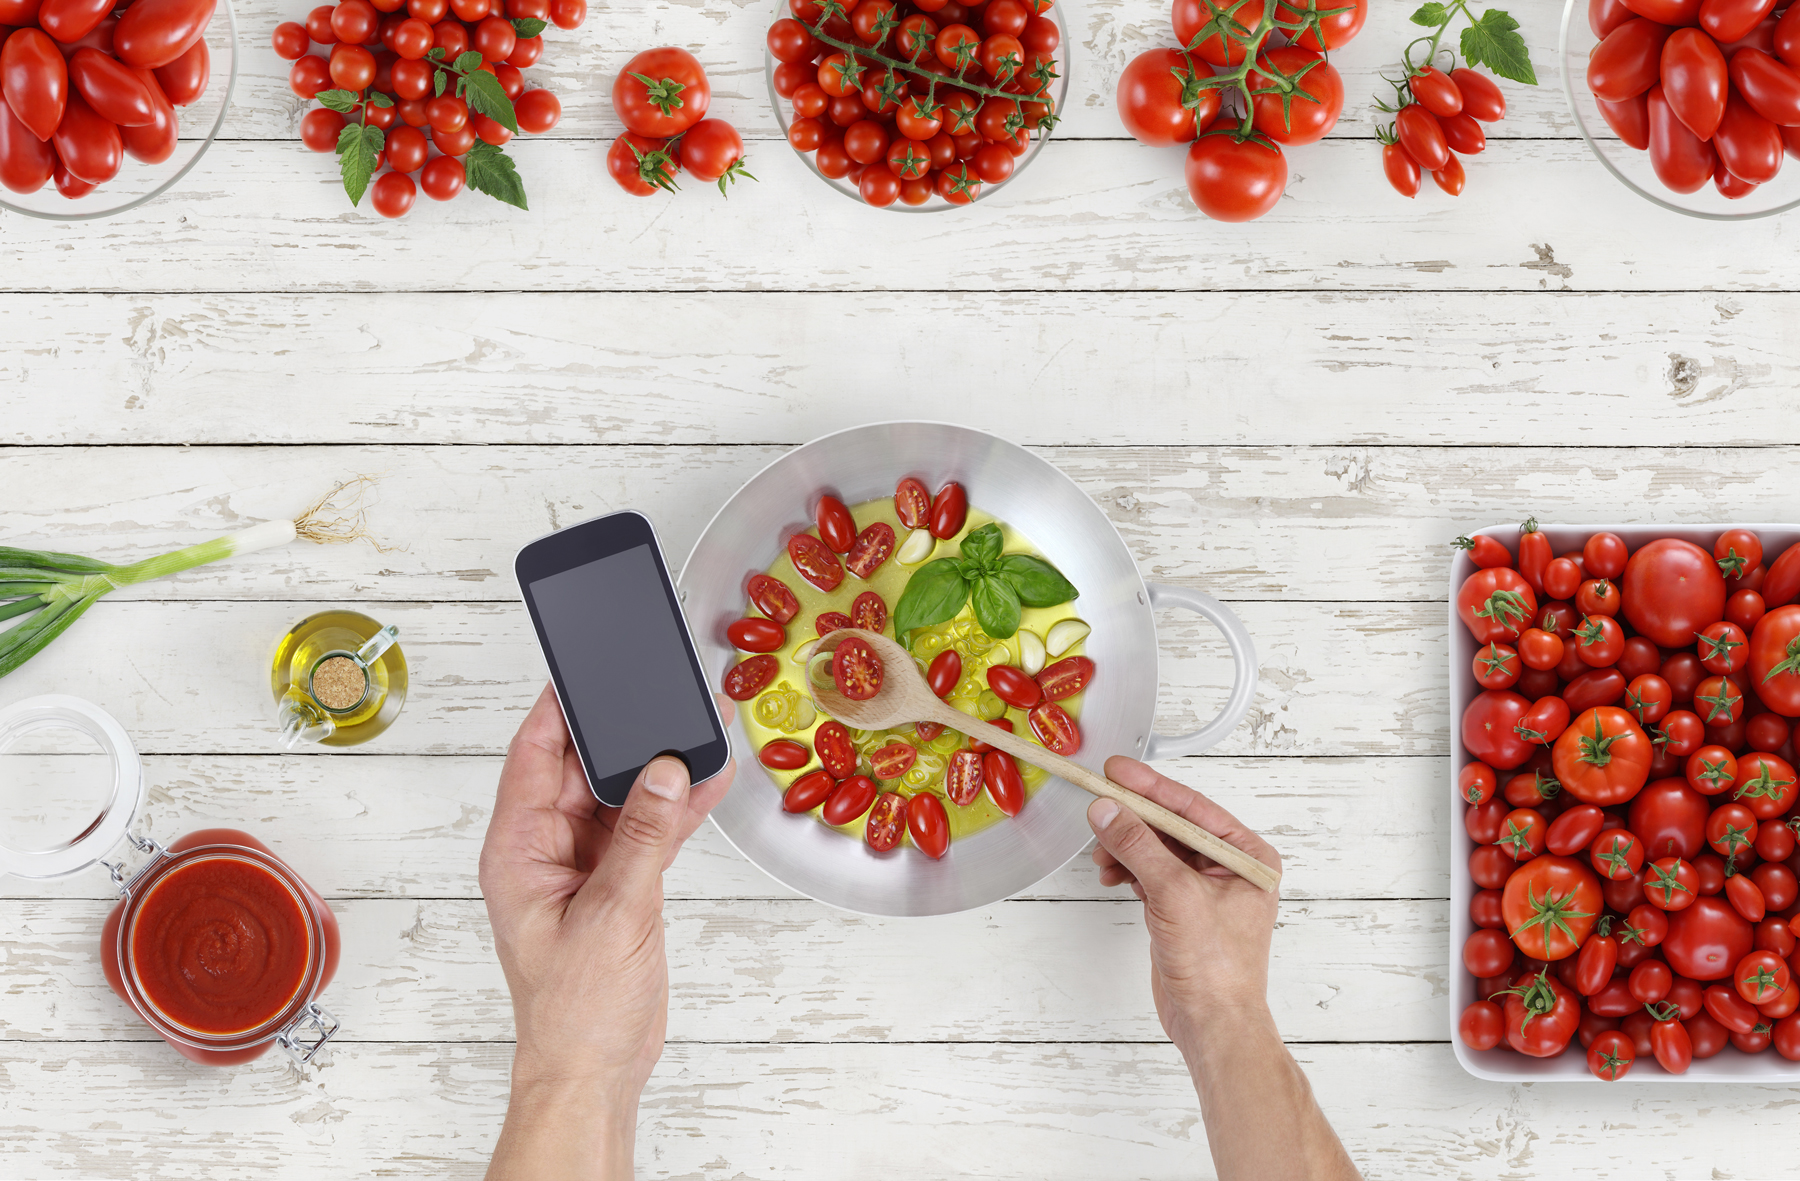 Meal planning apps - healthy meal prep with tomatoes